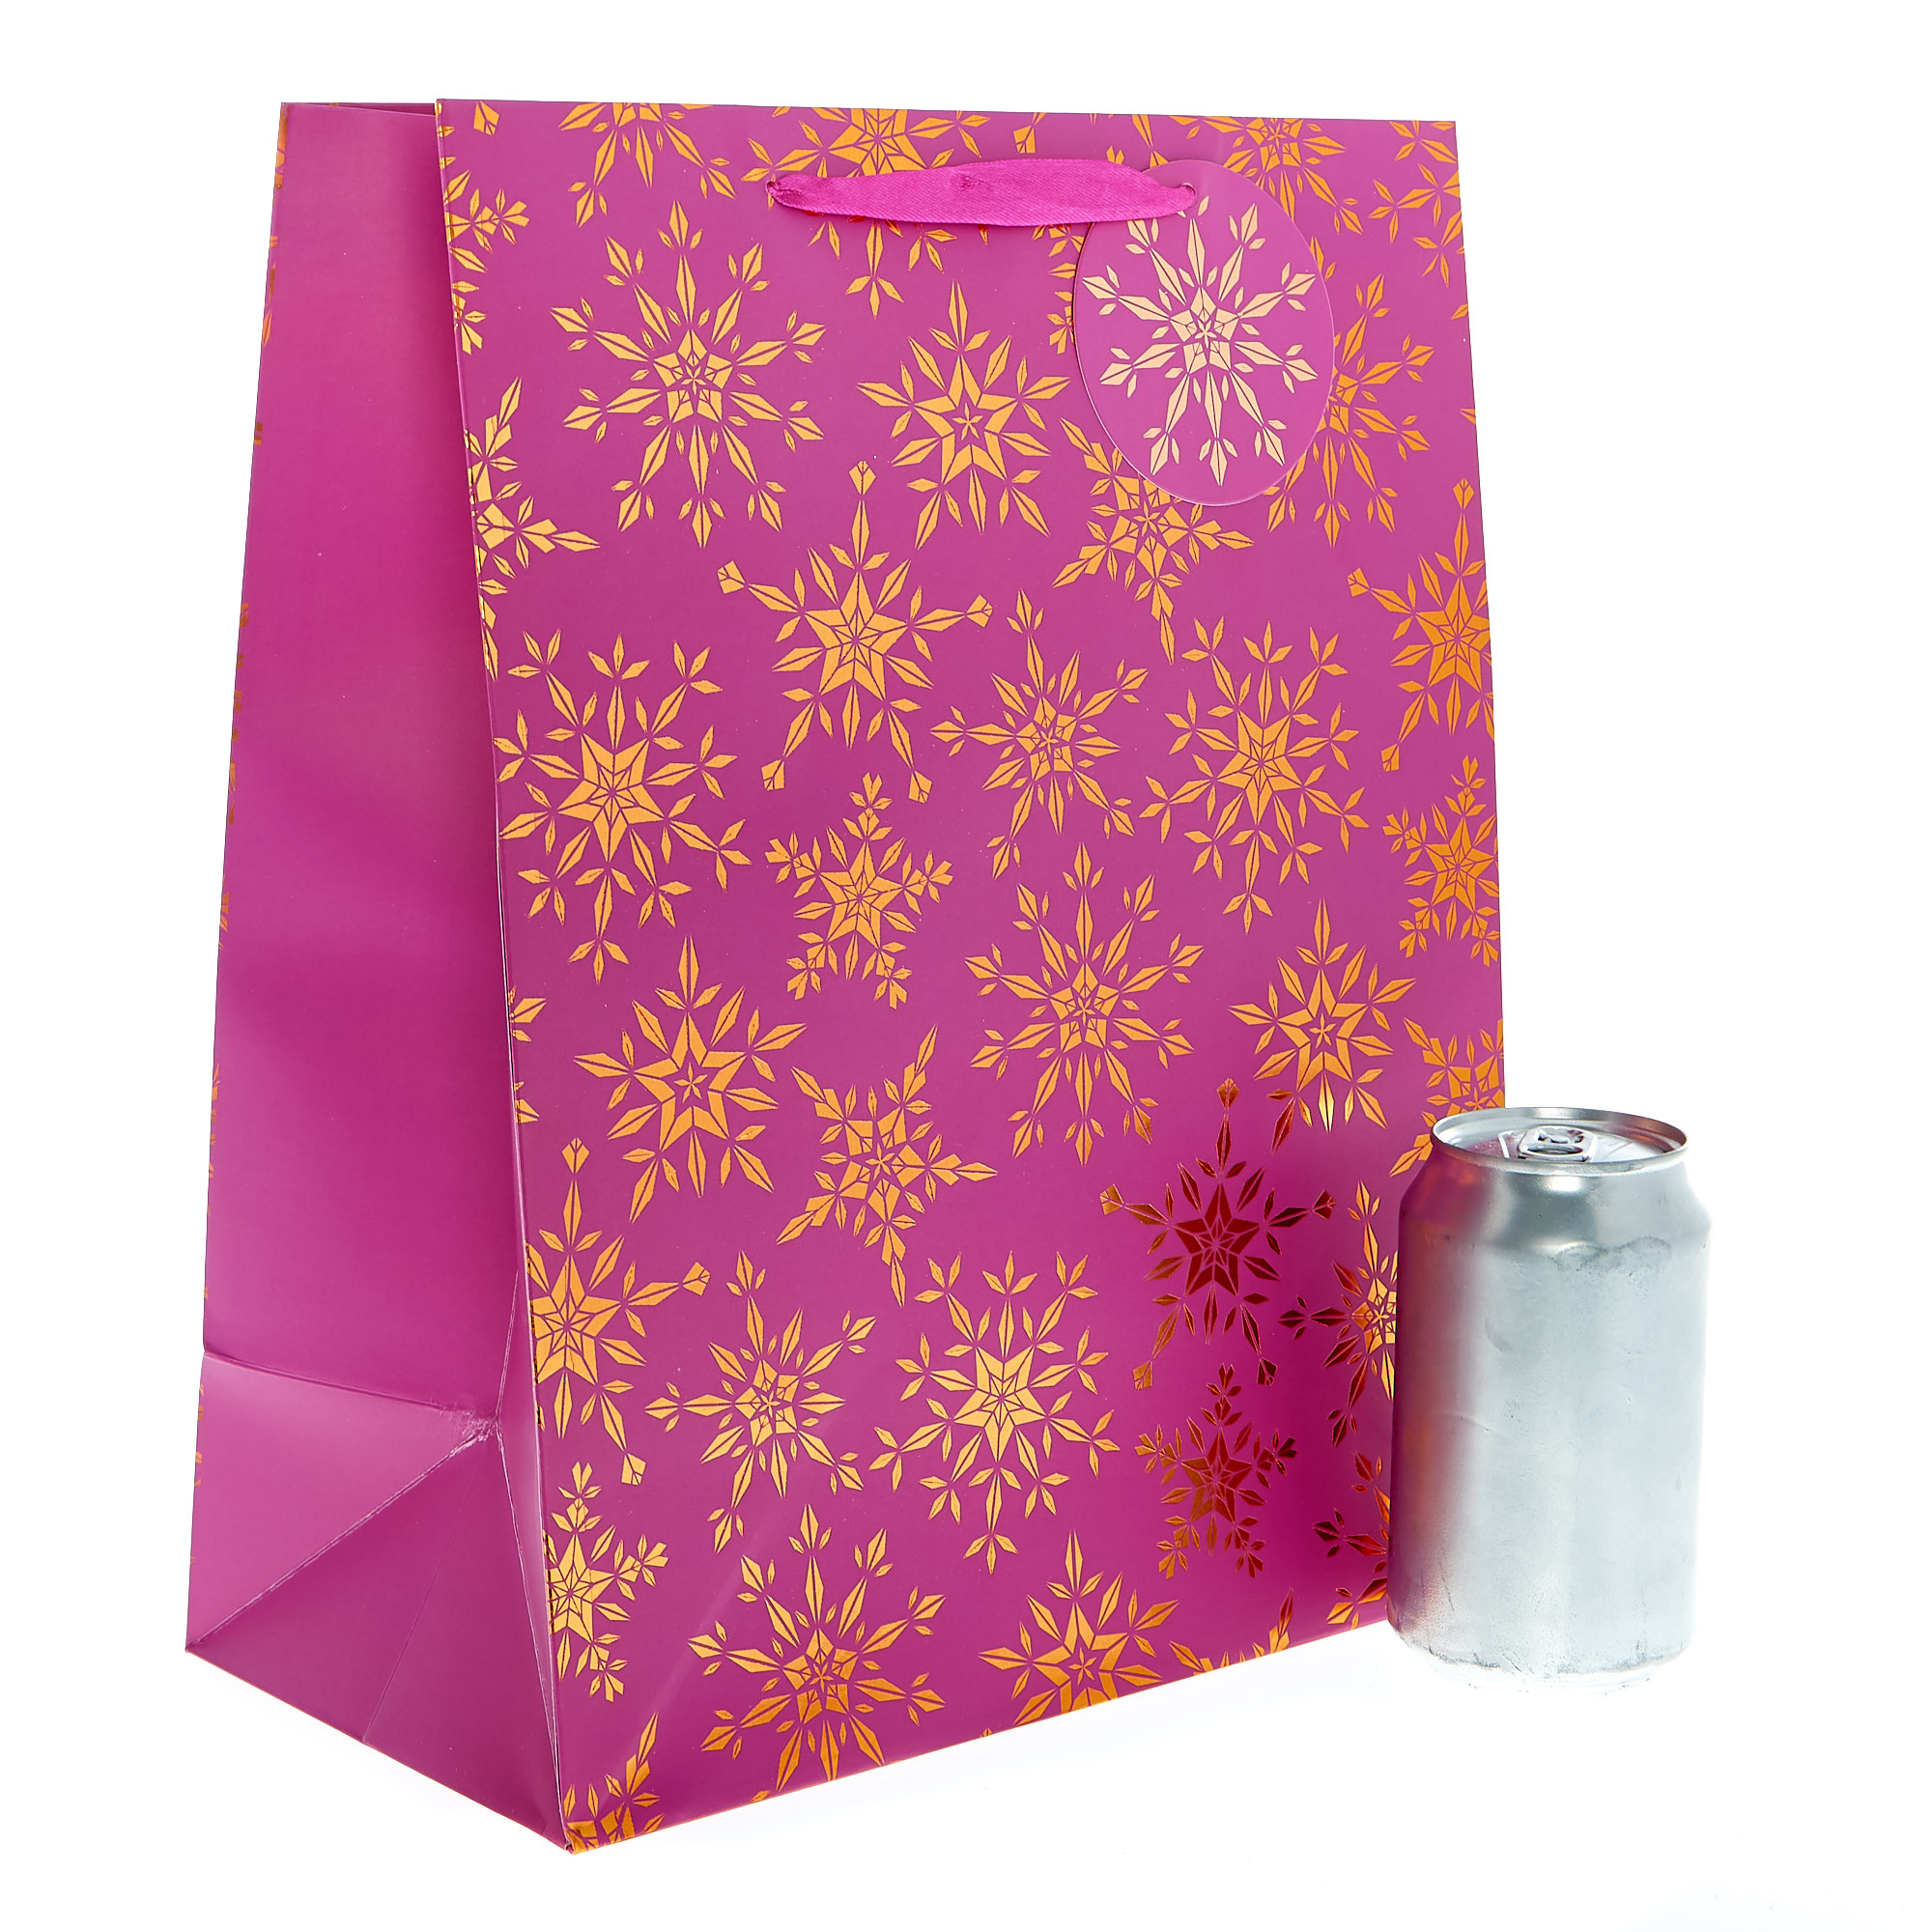 Medium Portrait Pink & Bronze Snowflakes Christmas Gift Bag